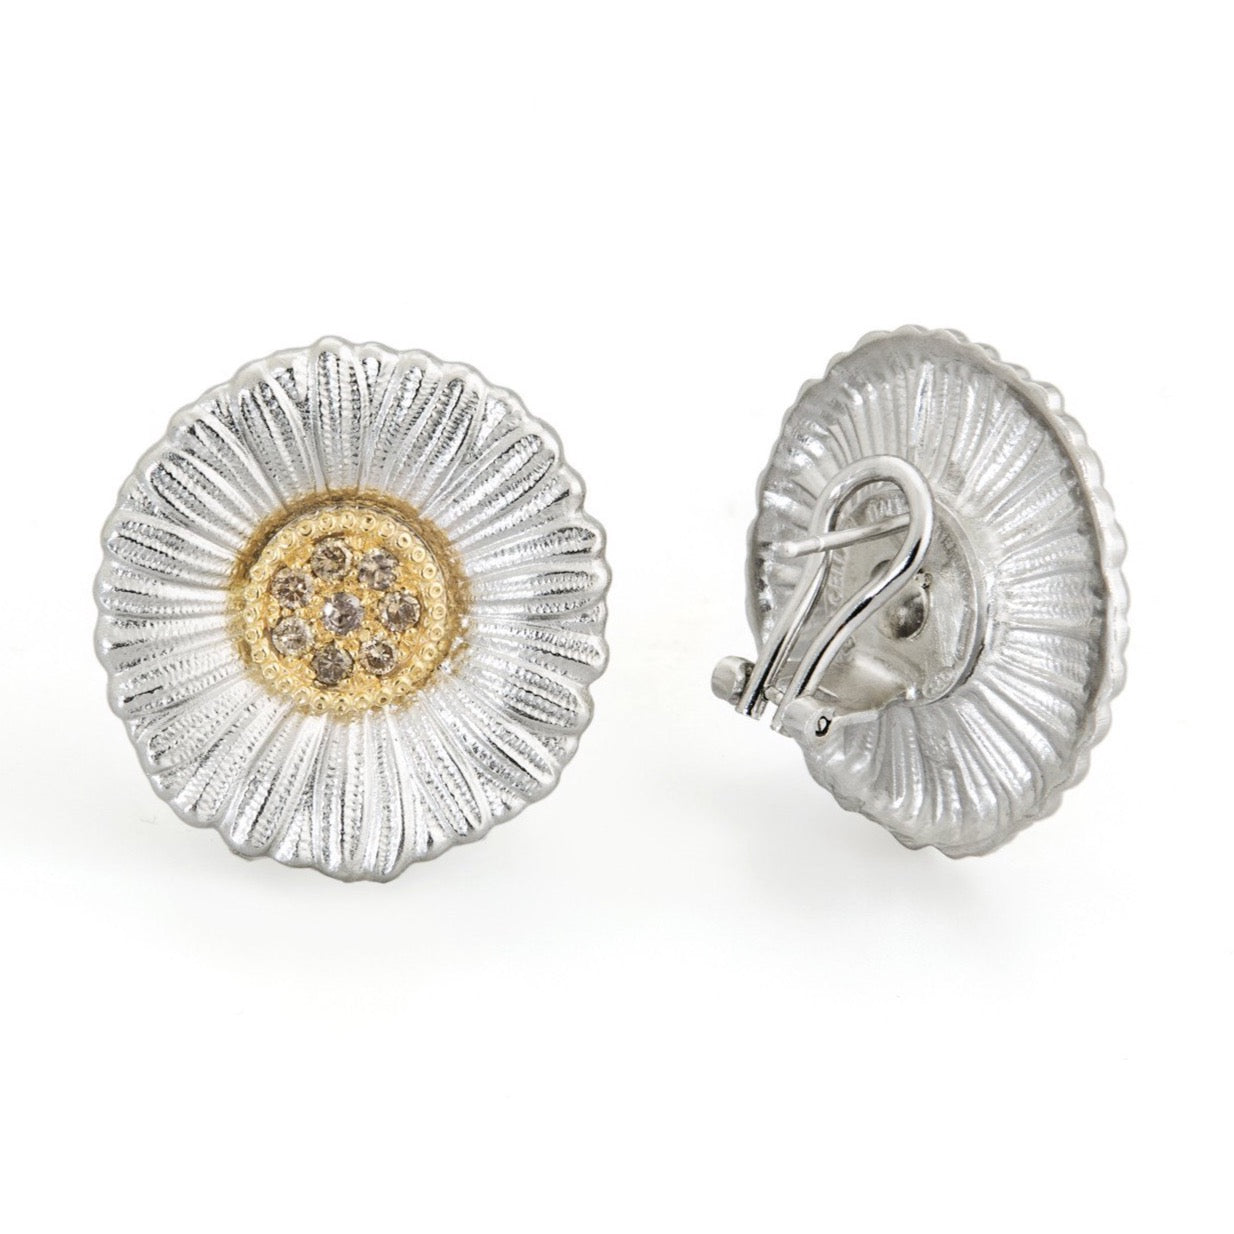 BUCCELLATI-BLOSSOMS-DAISY-BUTTON-EARRINGS-BROWN-DIAMONDS-STERLING-SILVER-SOFRMRBLM-Y